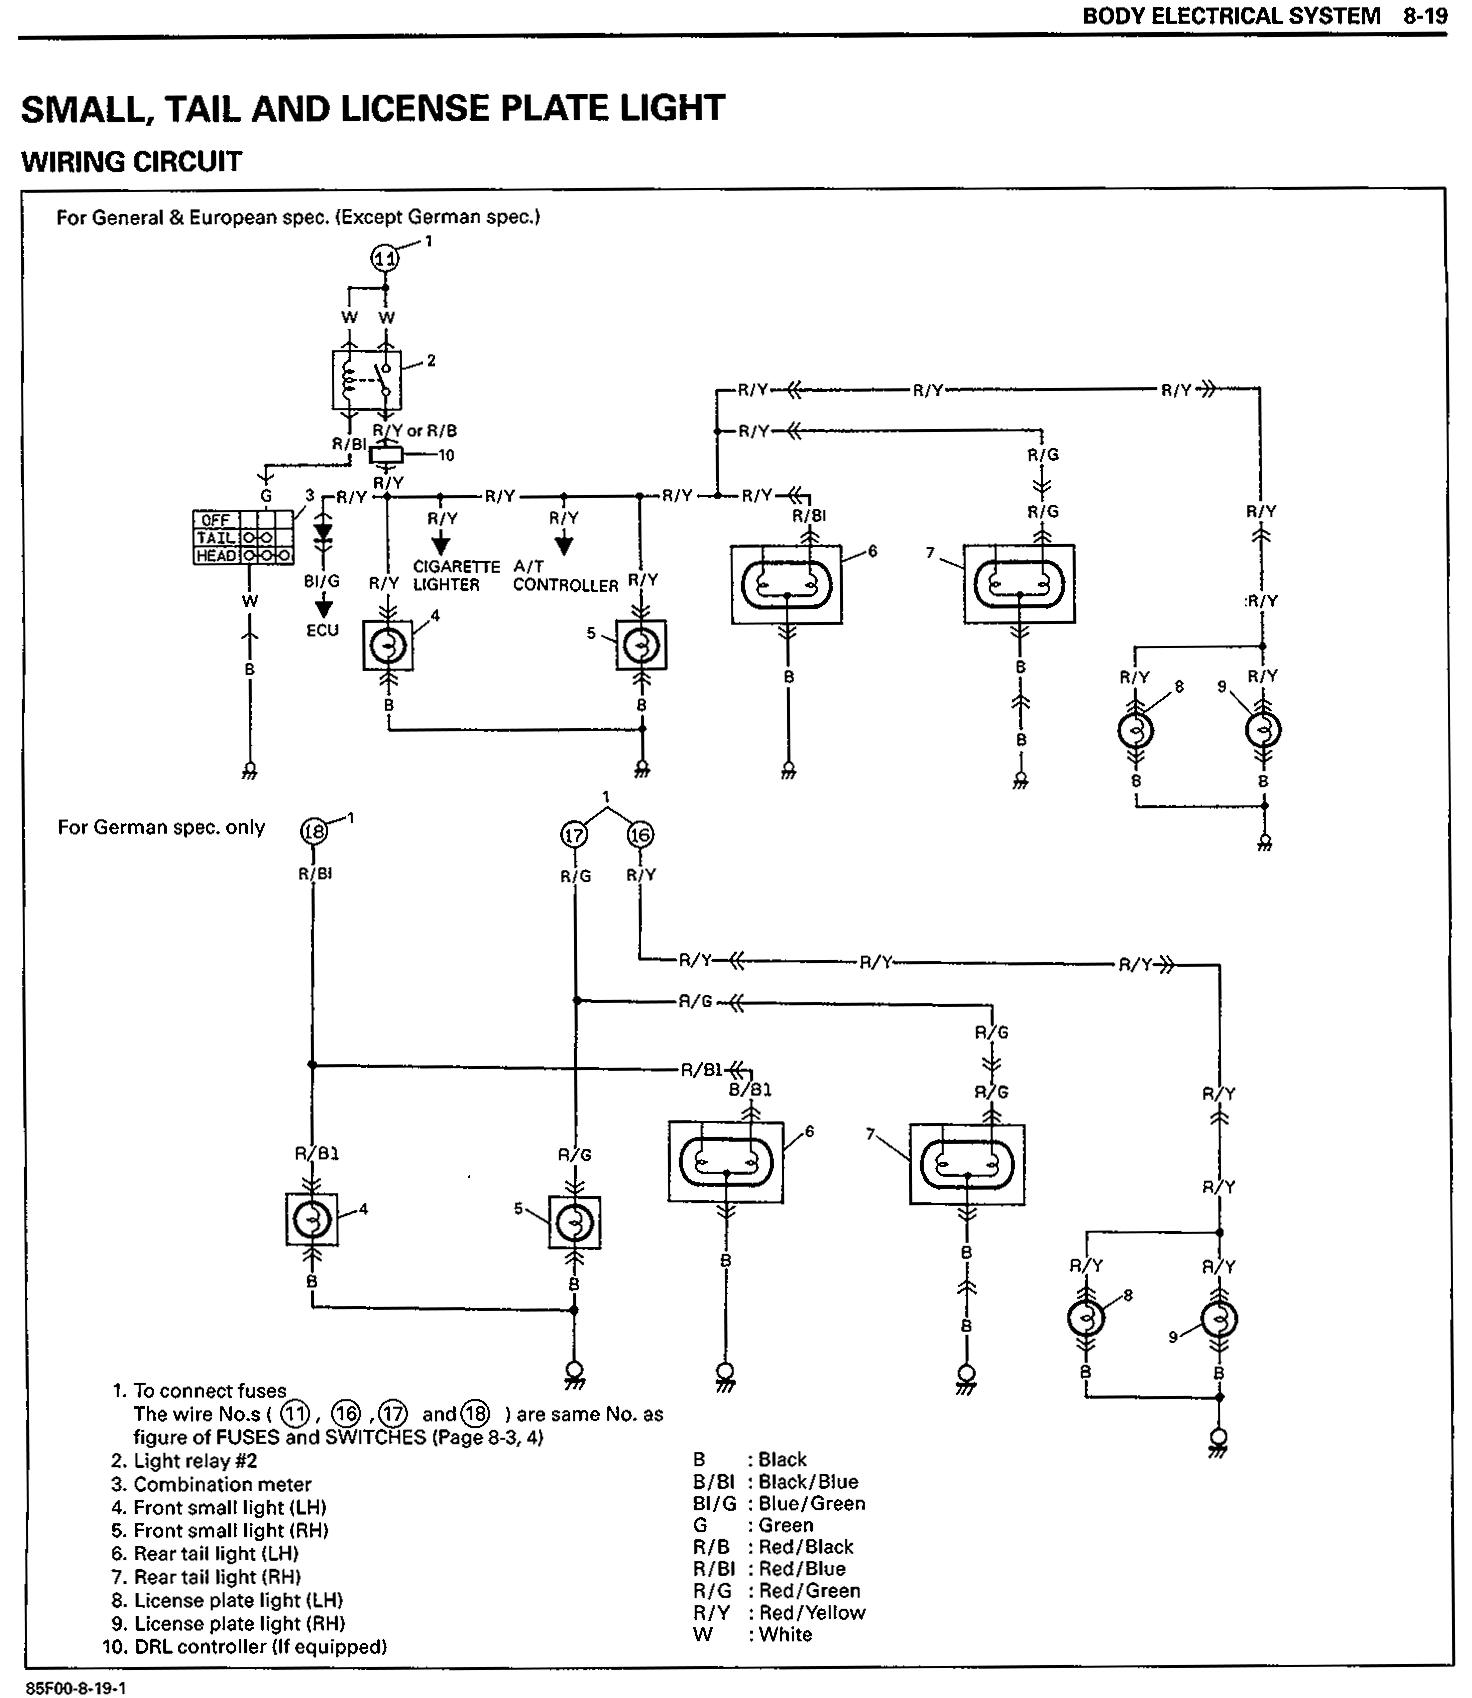 ag32ruz0n1bbsu8zg no dashlights vitara 2 0 v6 page 2 suzuki forums suzuki forum suzuki verona wiring diagram at reclaimingppi.co